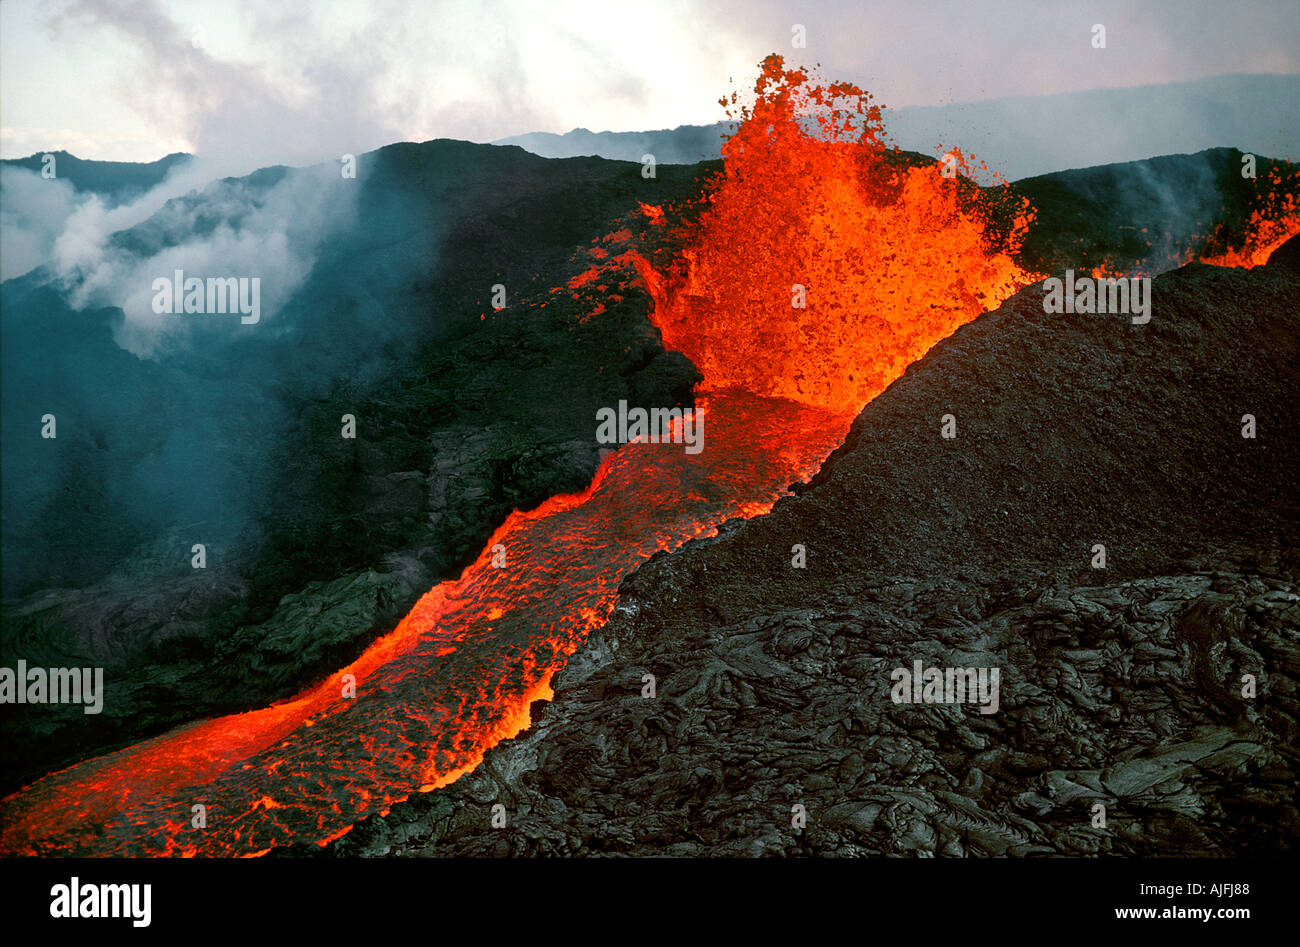 the majestic mauna loa of hawaii Hawaii news & information : big island now  as lofty and majestic as of mauna  kea is, its full height is not visible  at just 120 feet lower than mauna kea,  mauna loa is considered the largest volcano on our planet, with an.